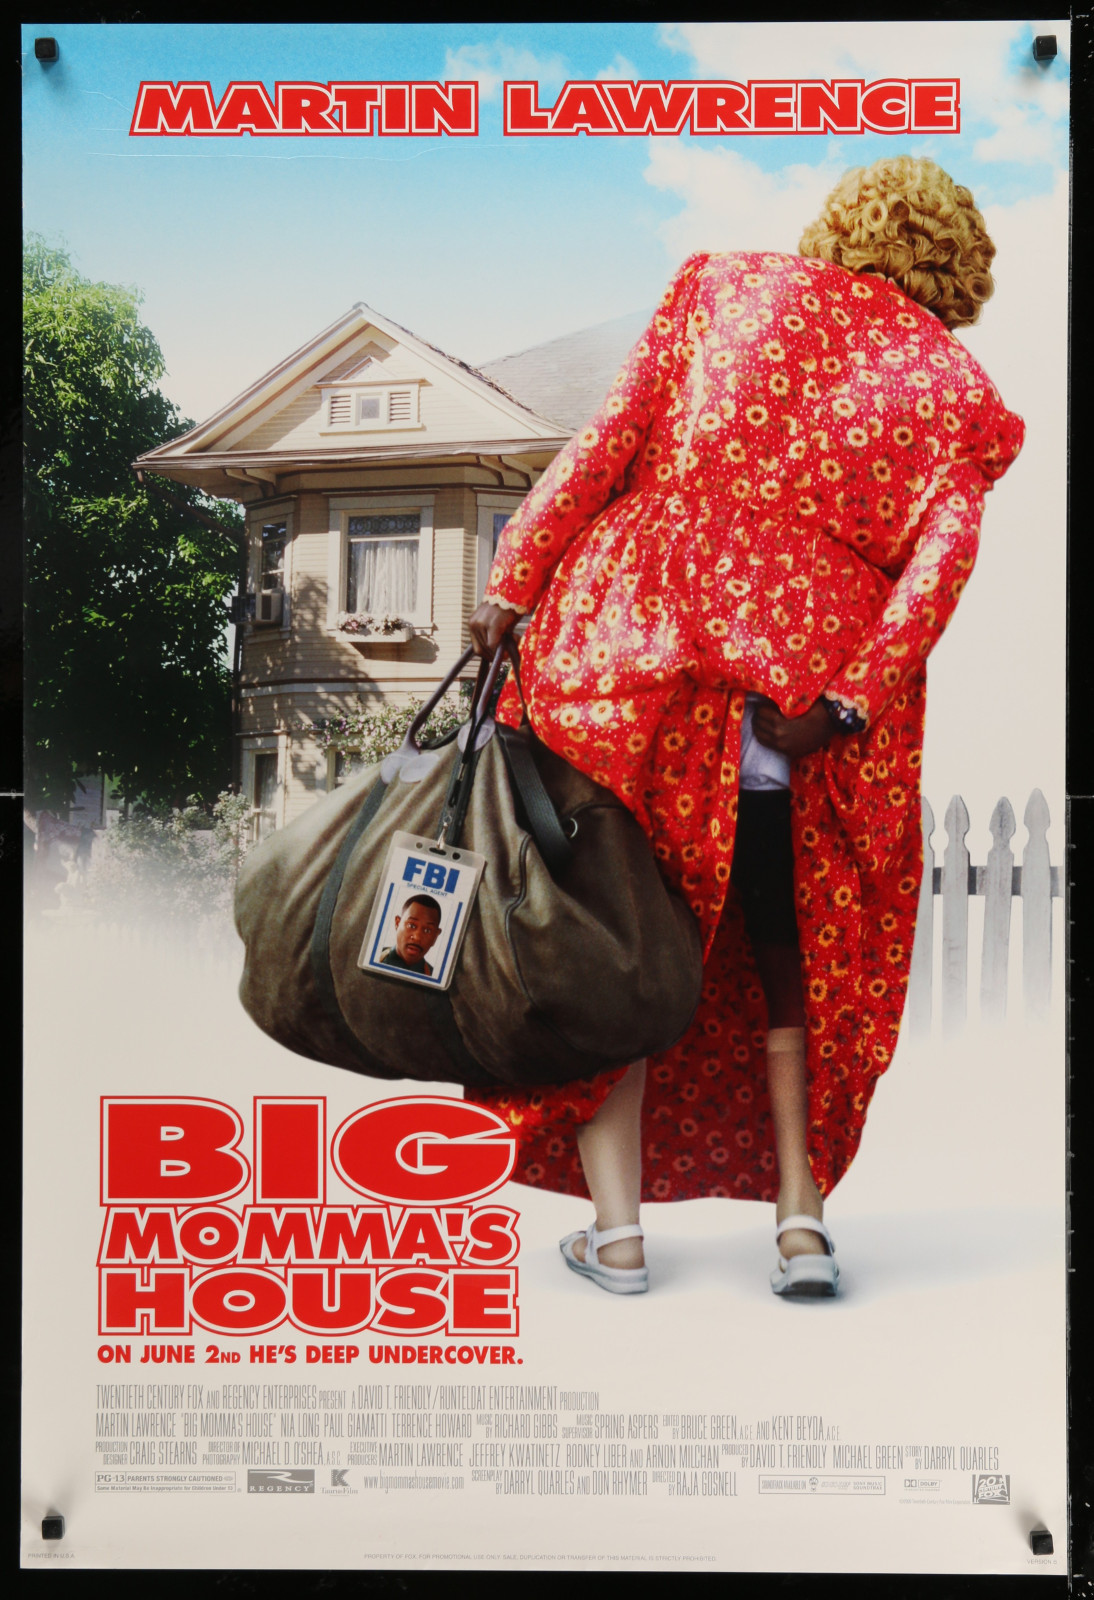 Big Momma'S House 2A438 A Part Of A Lot 18 Unfolded Double-Sided 27X40 Mostly Comedy One-Sheets '90S-00S Great Movie Images!